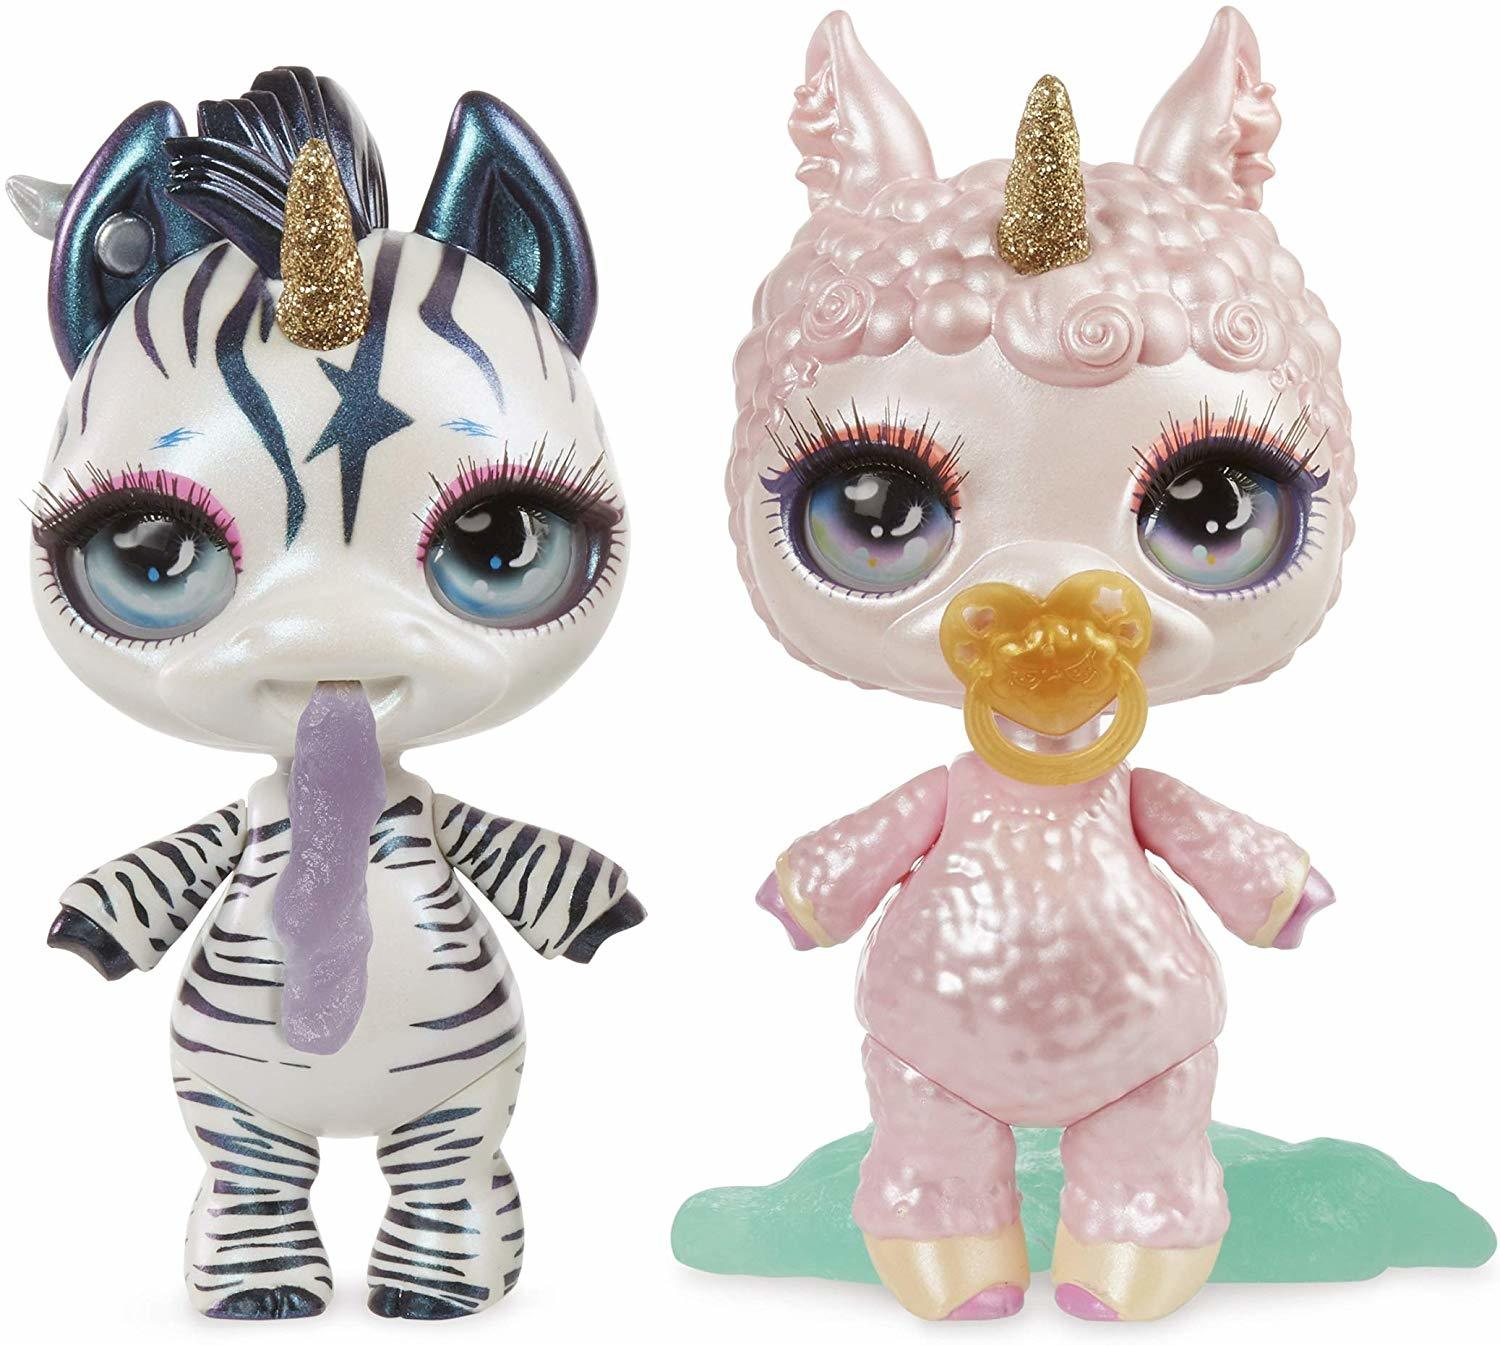 Набор-слайм Poopsie Sparkly Critters в банке Series 2-1A от MGA Entertainment